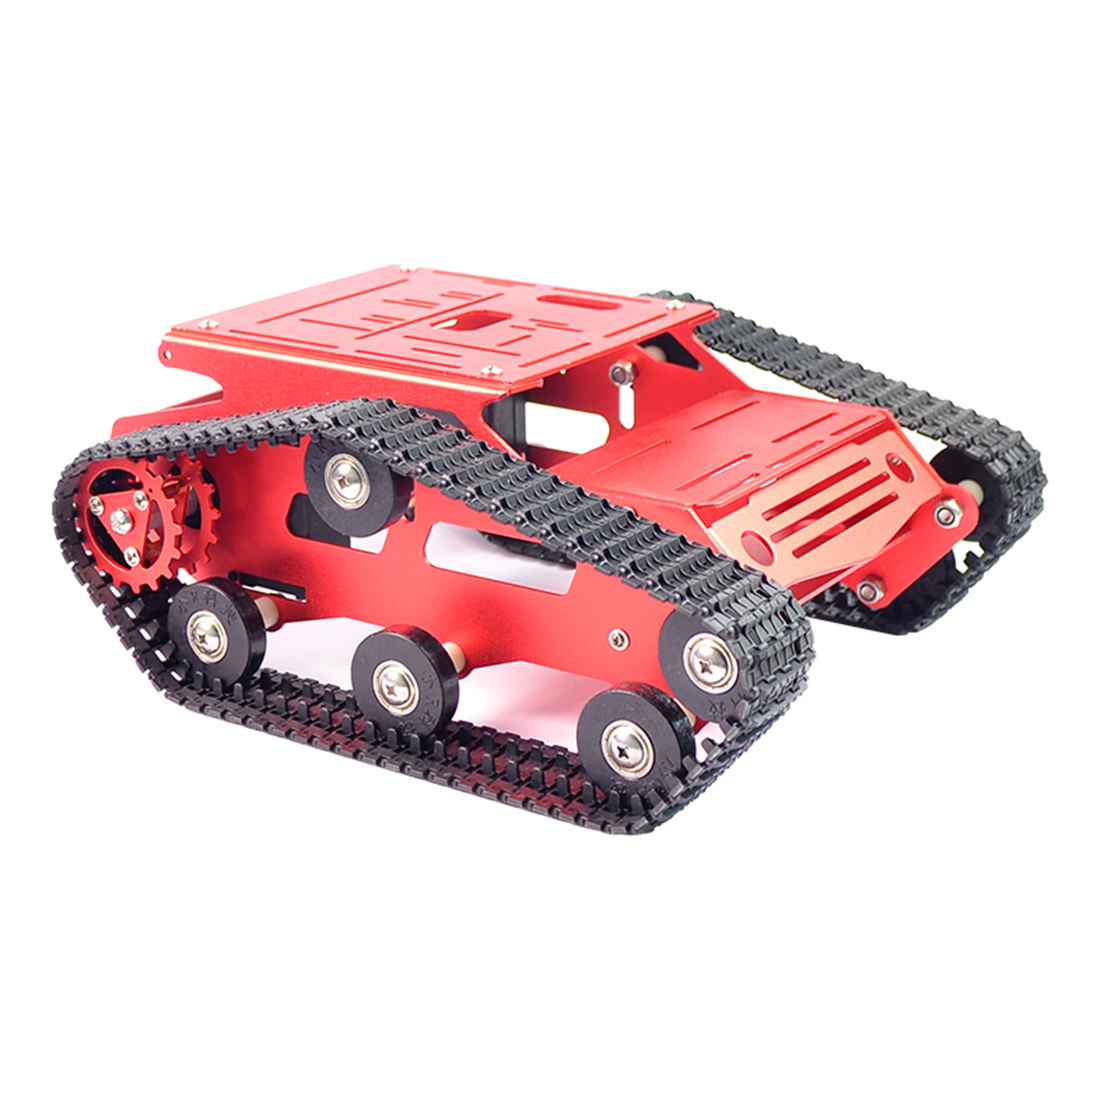 Surwish DIY Smart Robot Tank Crawler Chassis Car Frame Kit Programmable Toys For Kids Adults Christmas Gifts 2019 - Black Green